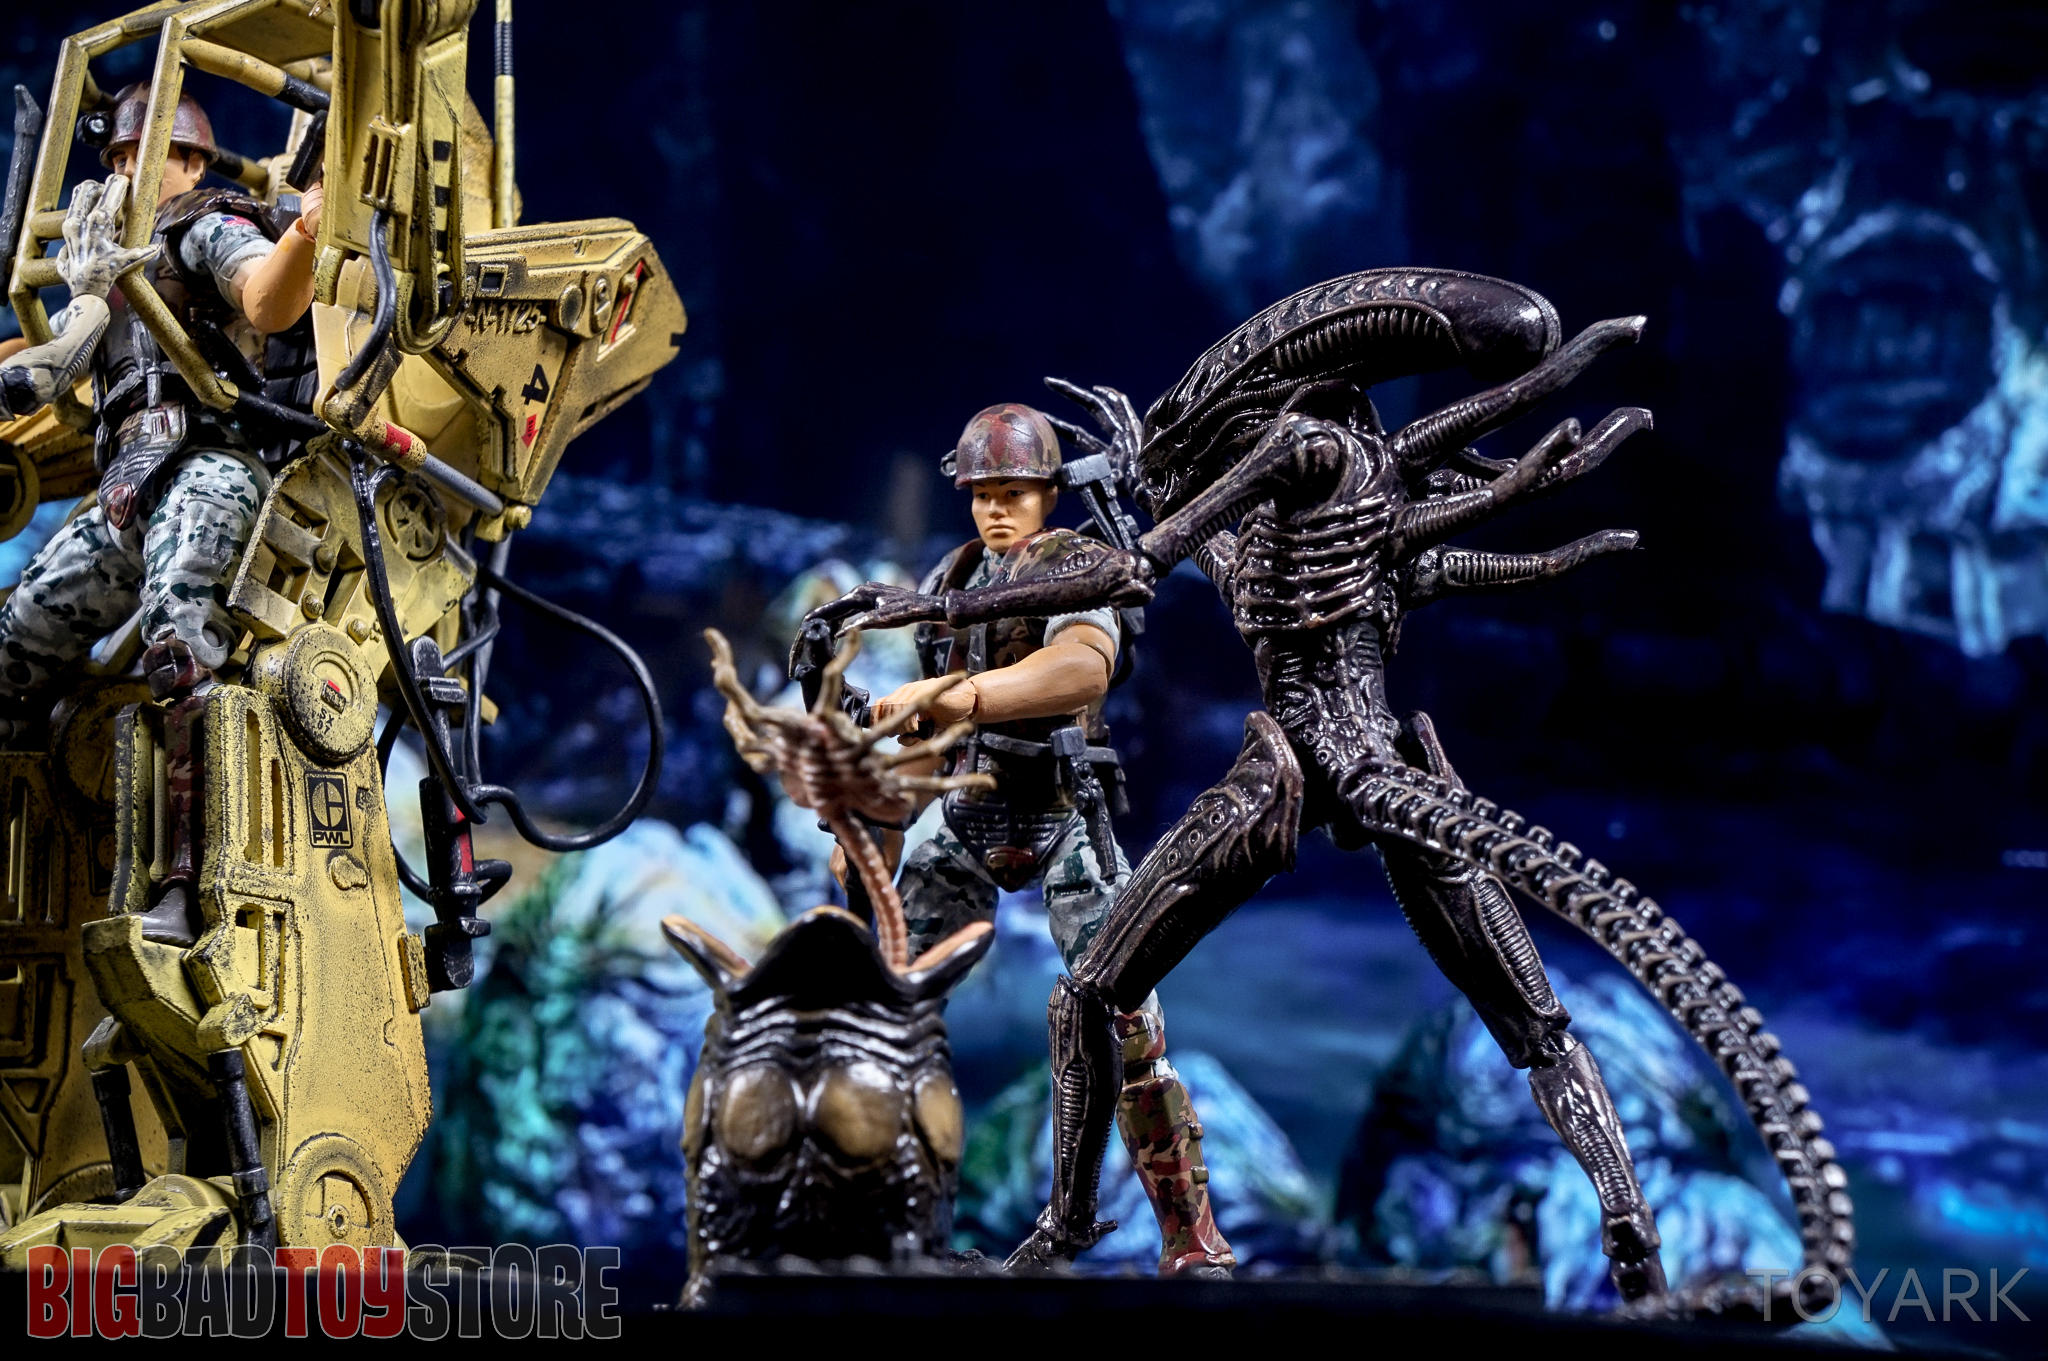 http://news.toyark.com/wp-content/uploads/sites/4/2016/07/Hiya-Toys-Aliens-154.jpg